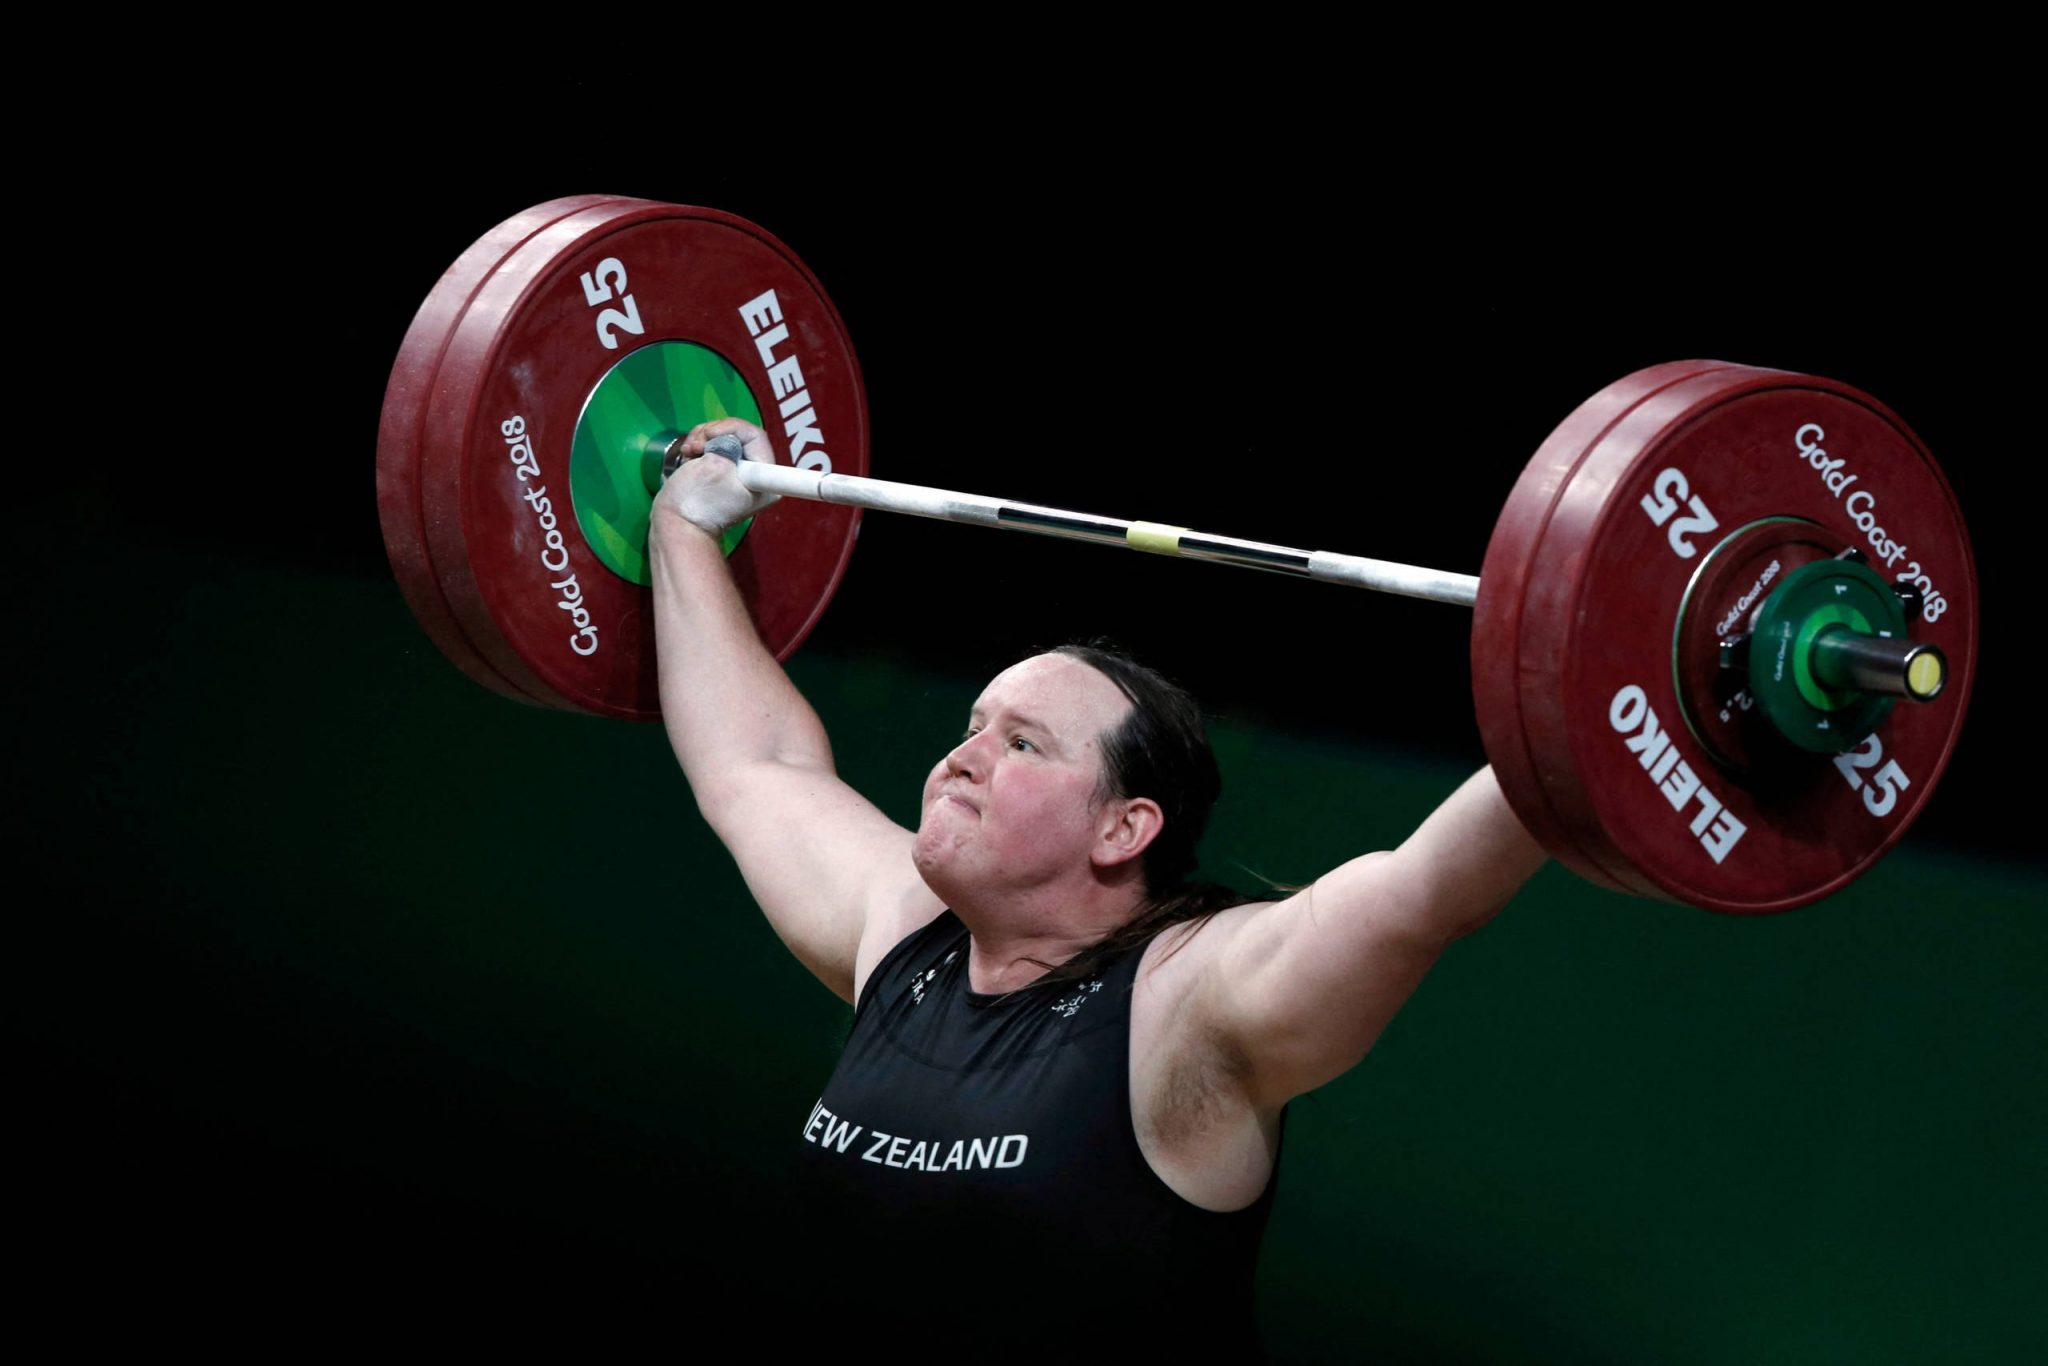 The transformed weightlifter will make his debut at the ...